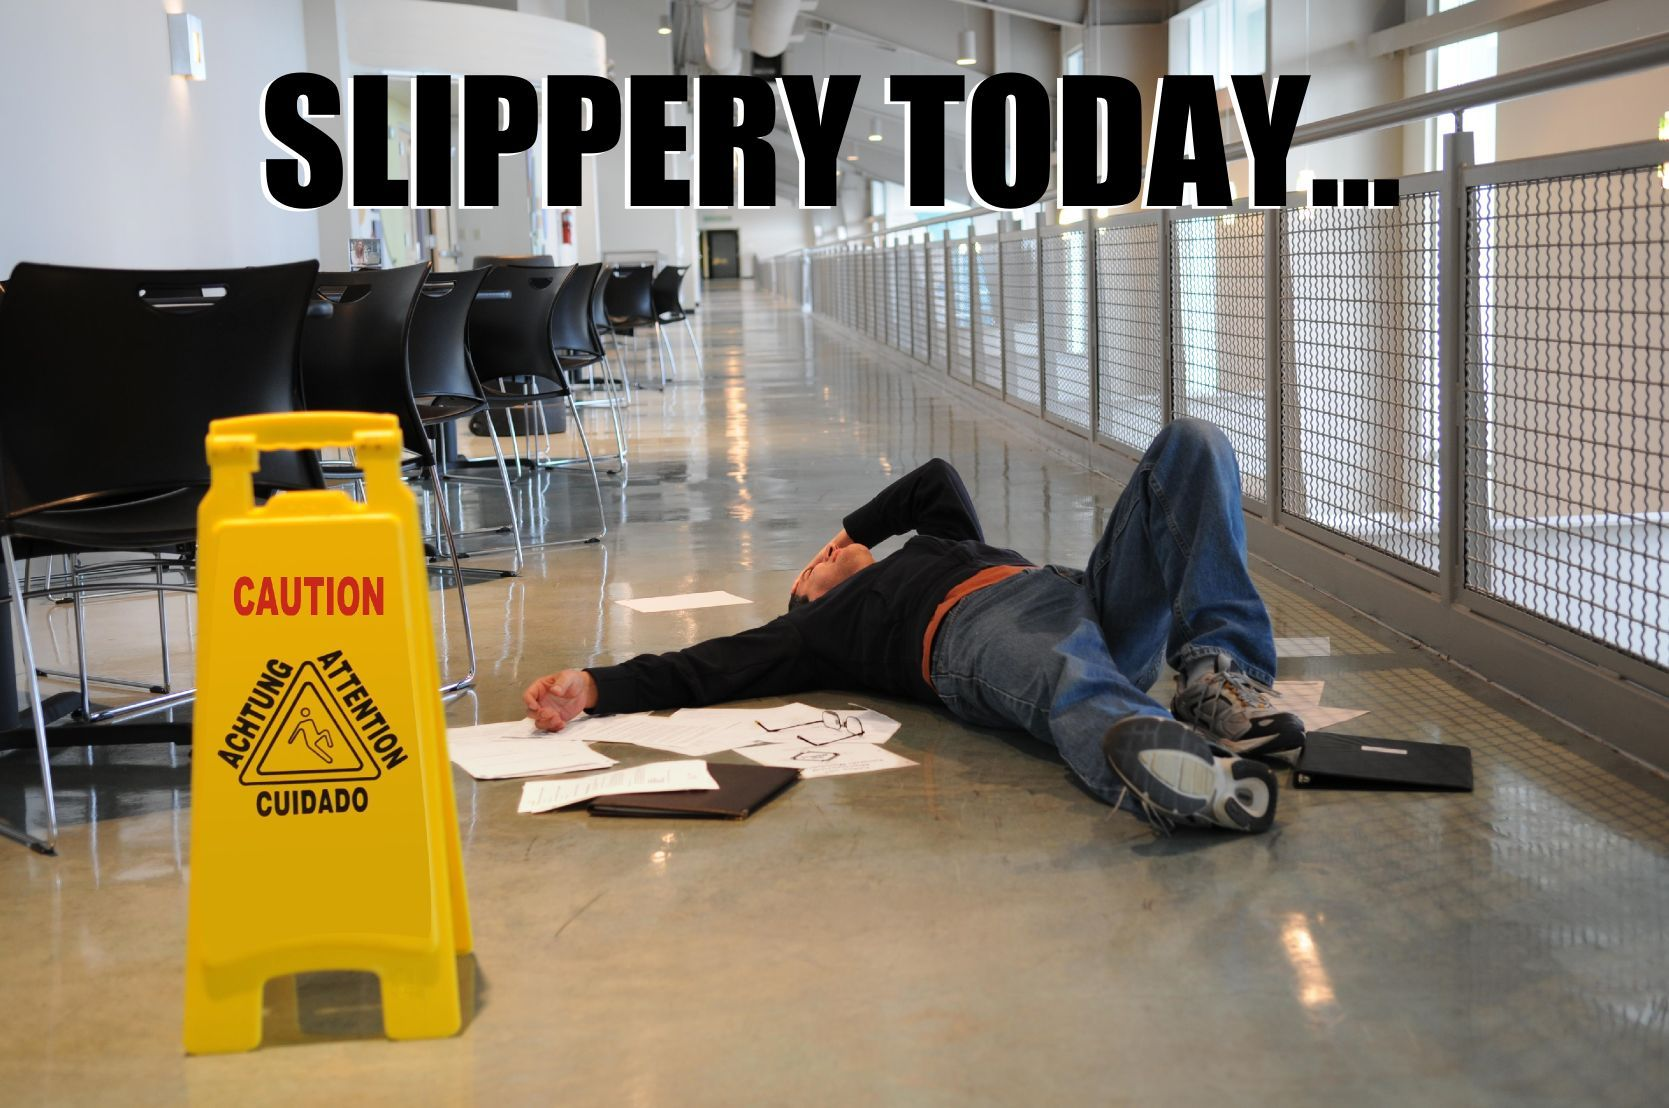 How to improve traction on your slippery office floors tiles how to improve traction on your slippery office floors tiles dailygadgetfo Gallery